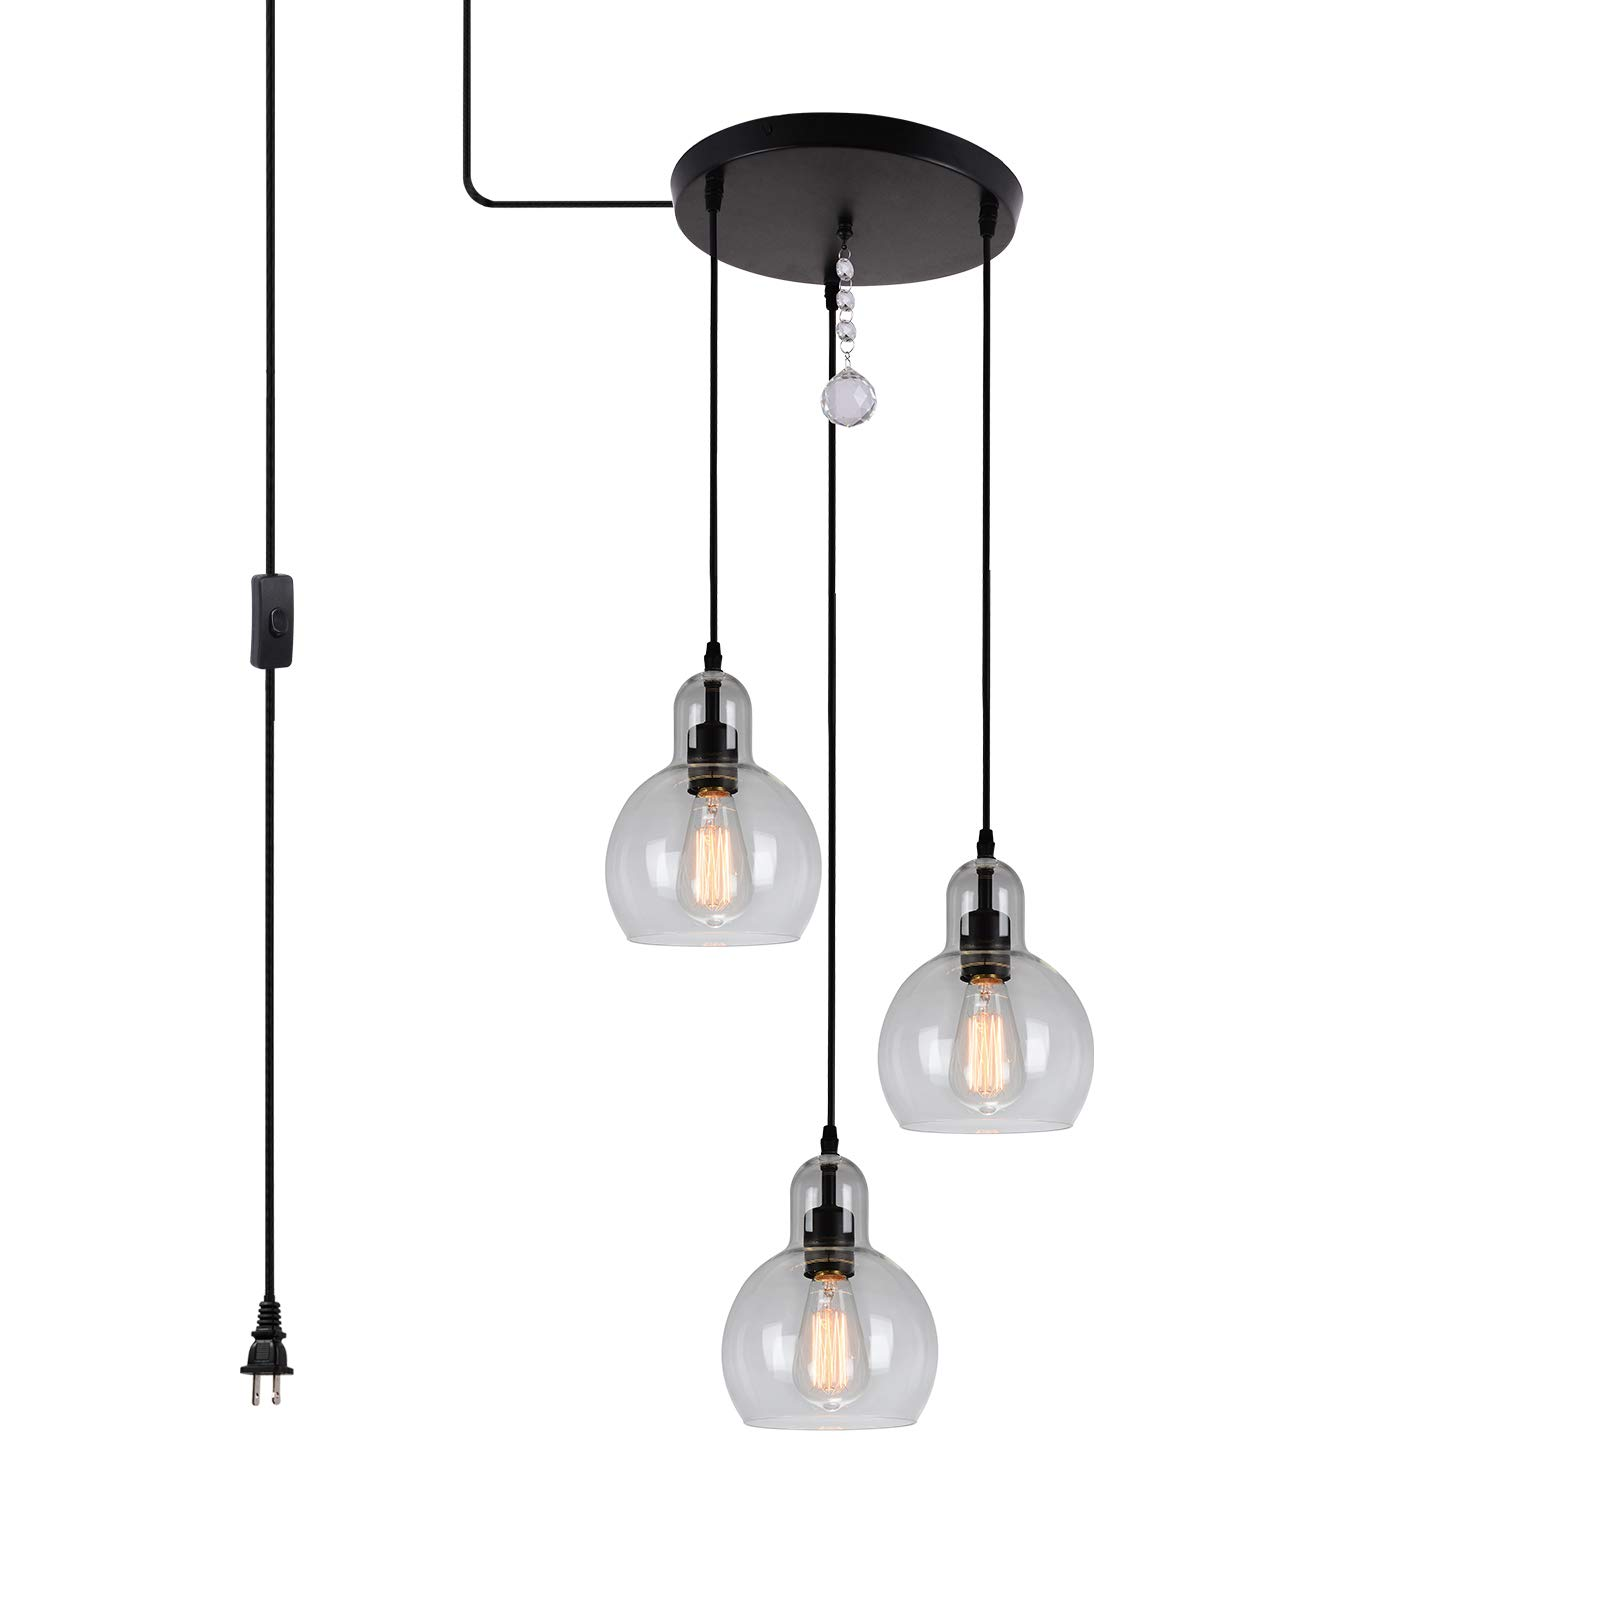 HMVPL 3-Lights Plug in Glass Chandelier Pendant Light with 16 Ft Hanging Cord and in-line on/Off Toggle Switch, Antique Lighting Fixture for Living Room Dining Room Kitchen Island Table Hallway